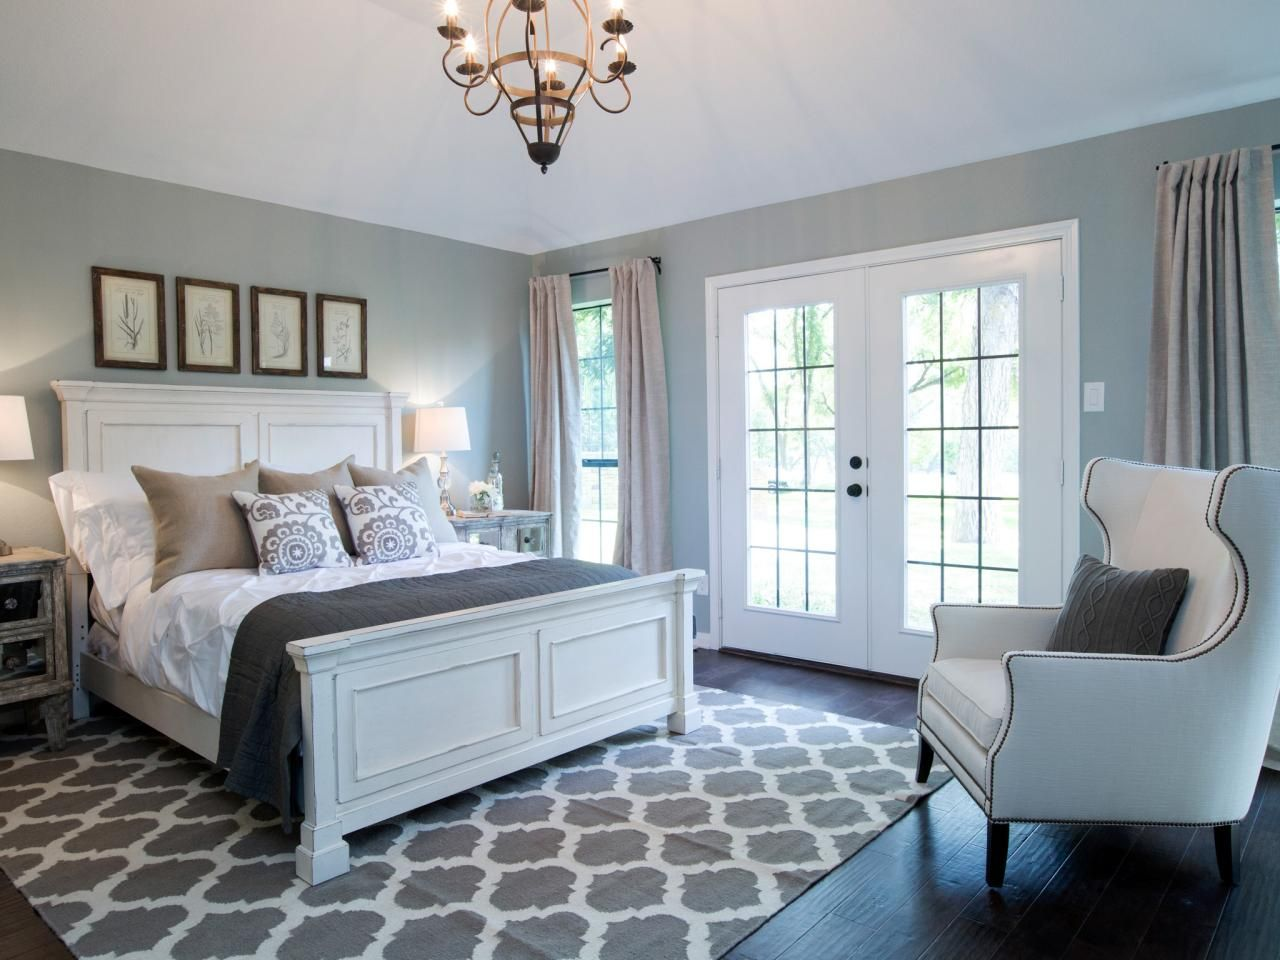 Interior Color Ideas For Master Bedroom fixer upper yours mine ours and a home on the river joanna master bedroom greyfrench doors bedroommaster color ideasgray